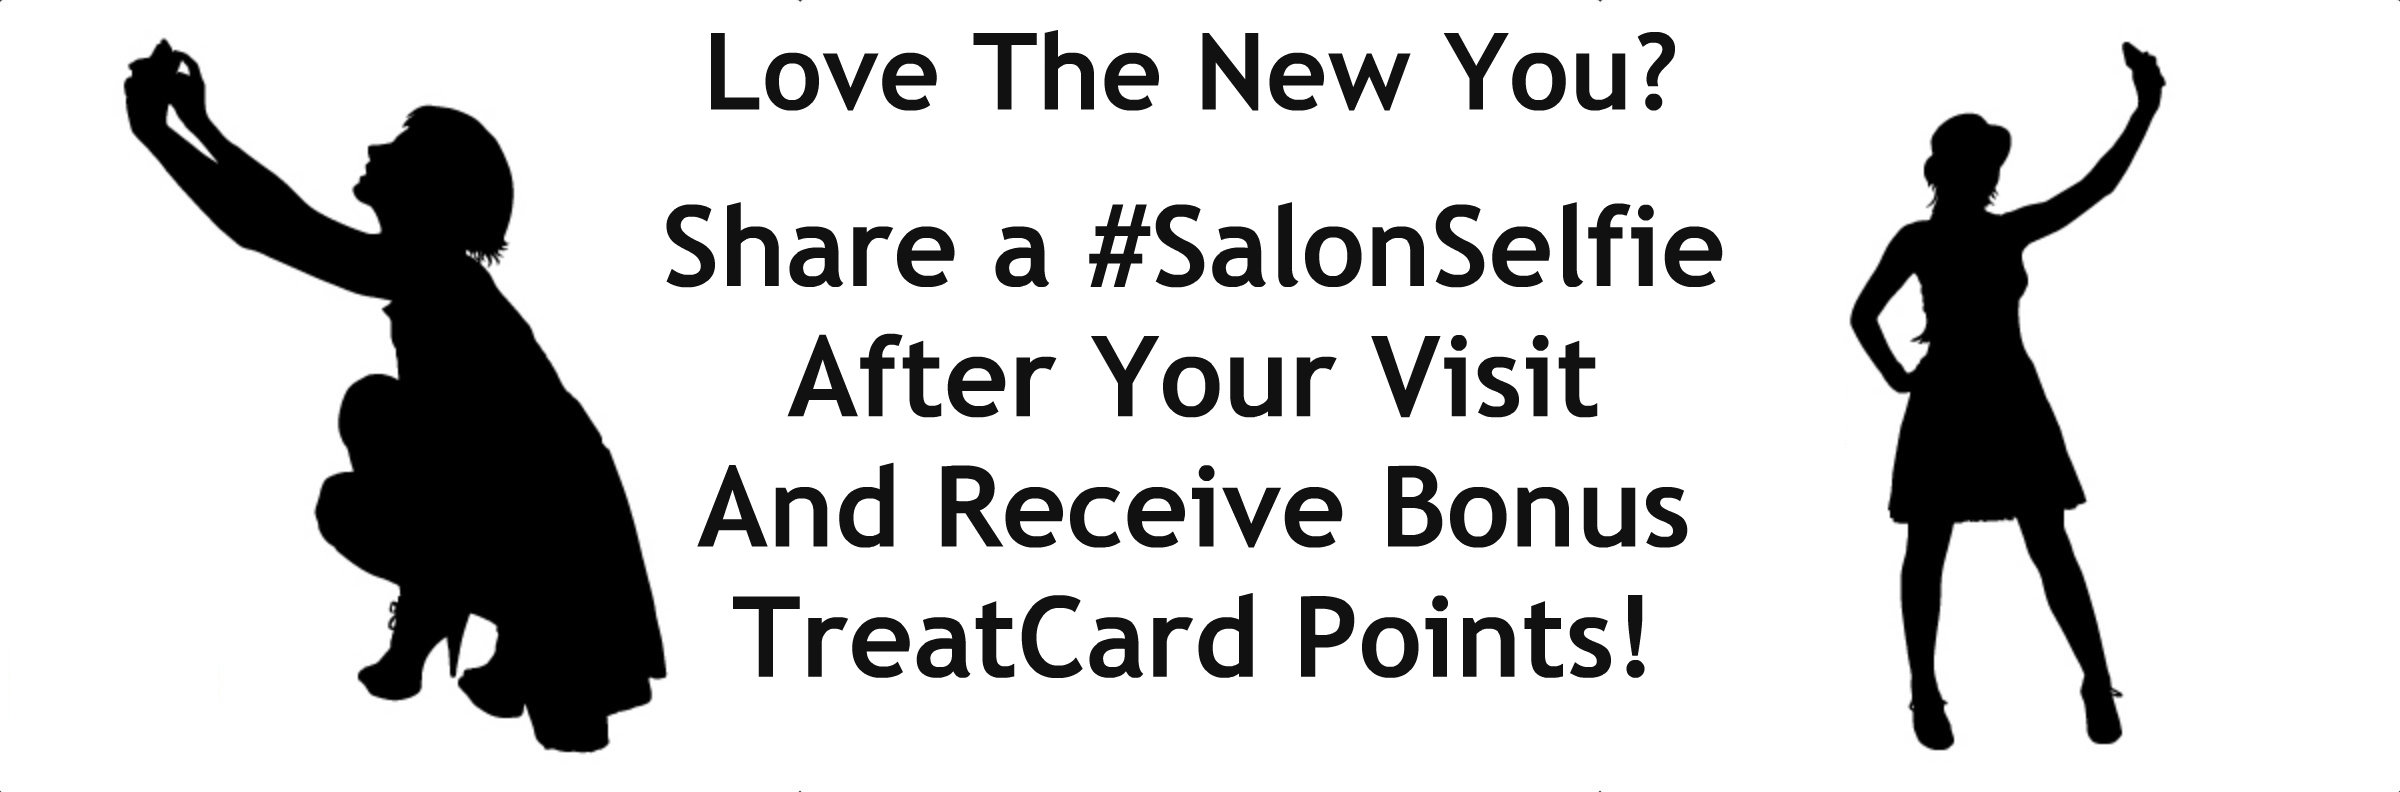 salon-selfie-marketing-ideas